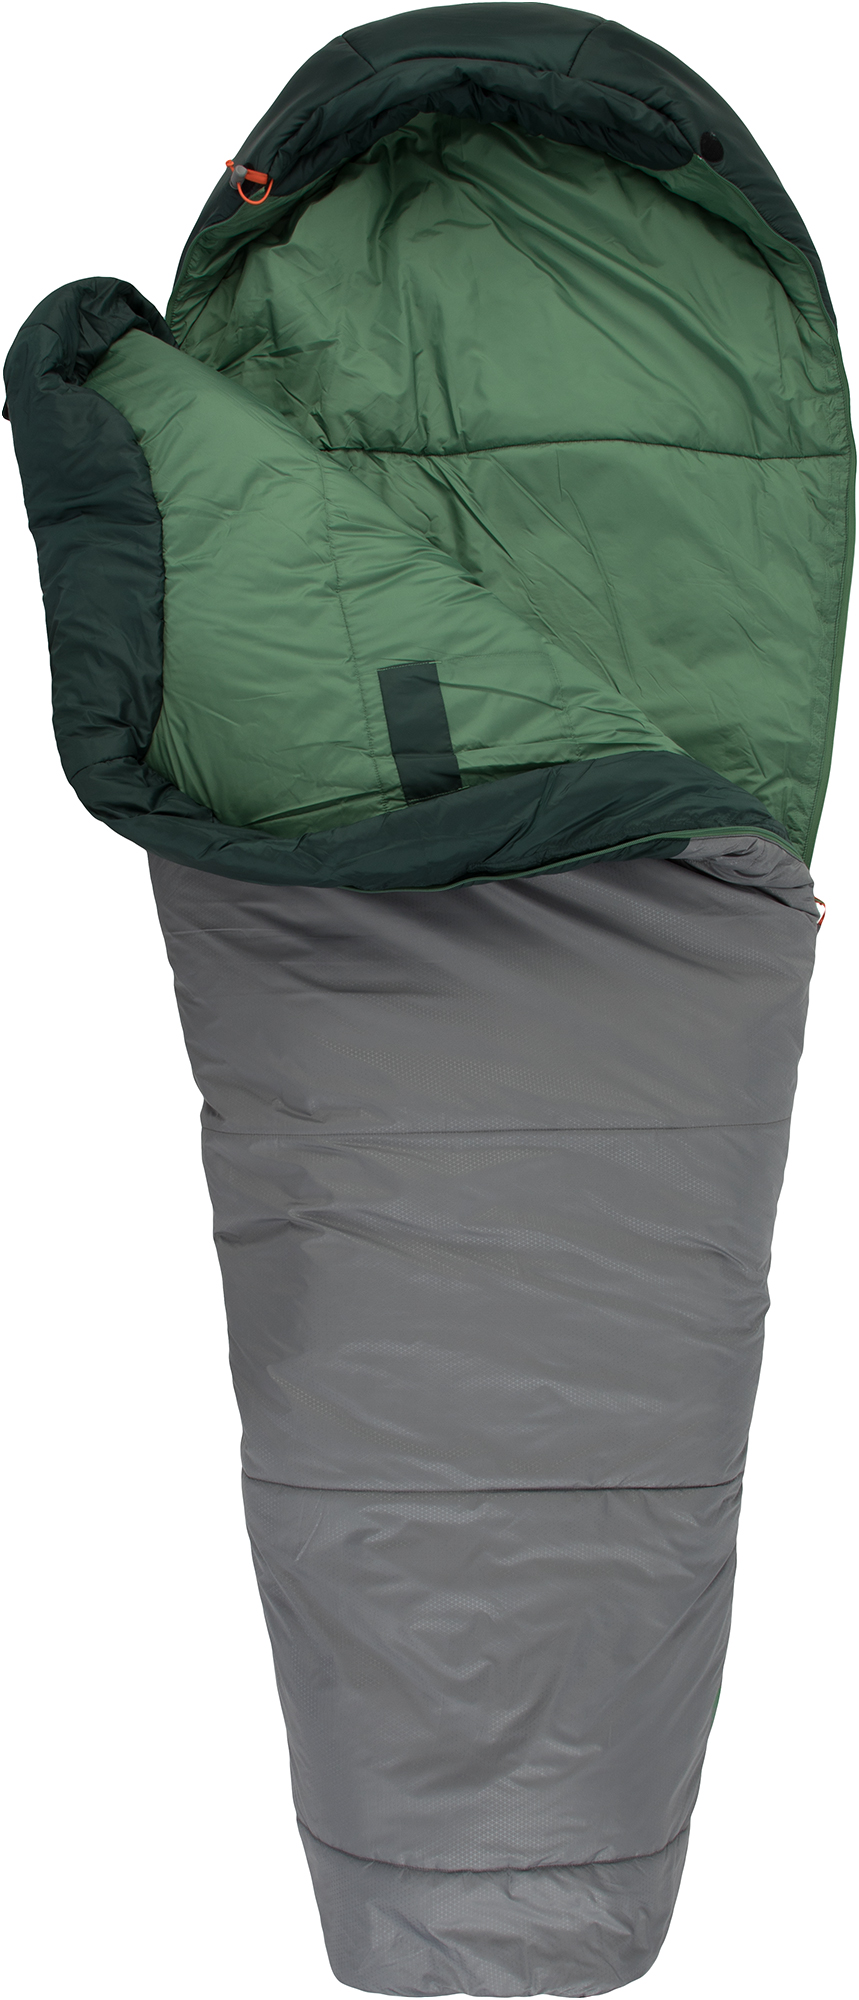 The North Face The North Face Aleutian 0/-18 Regular